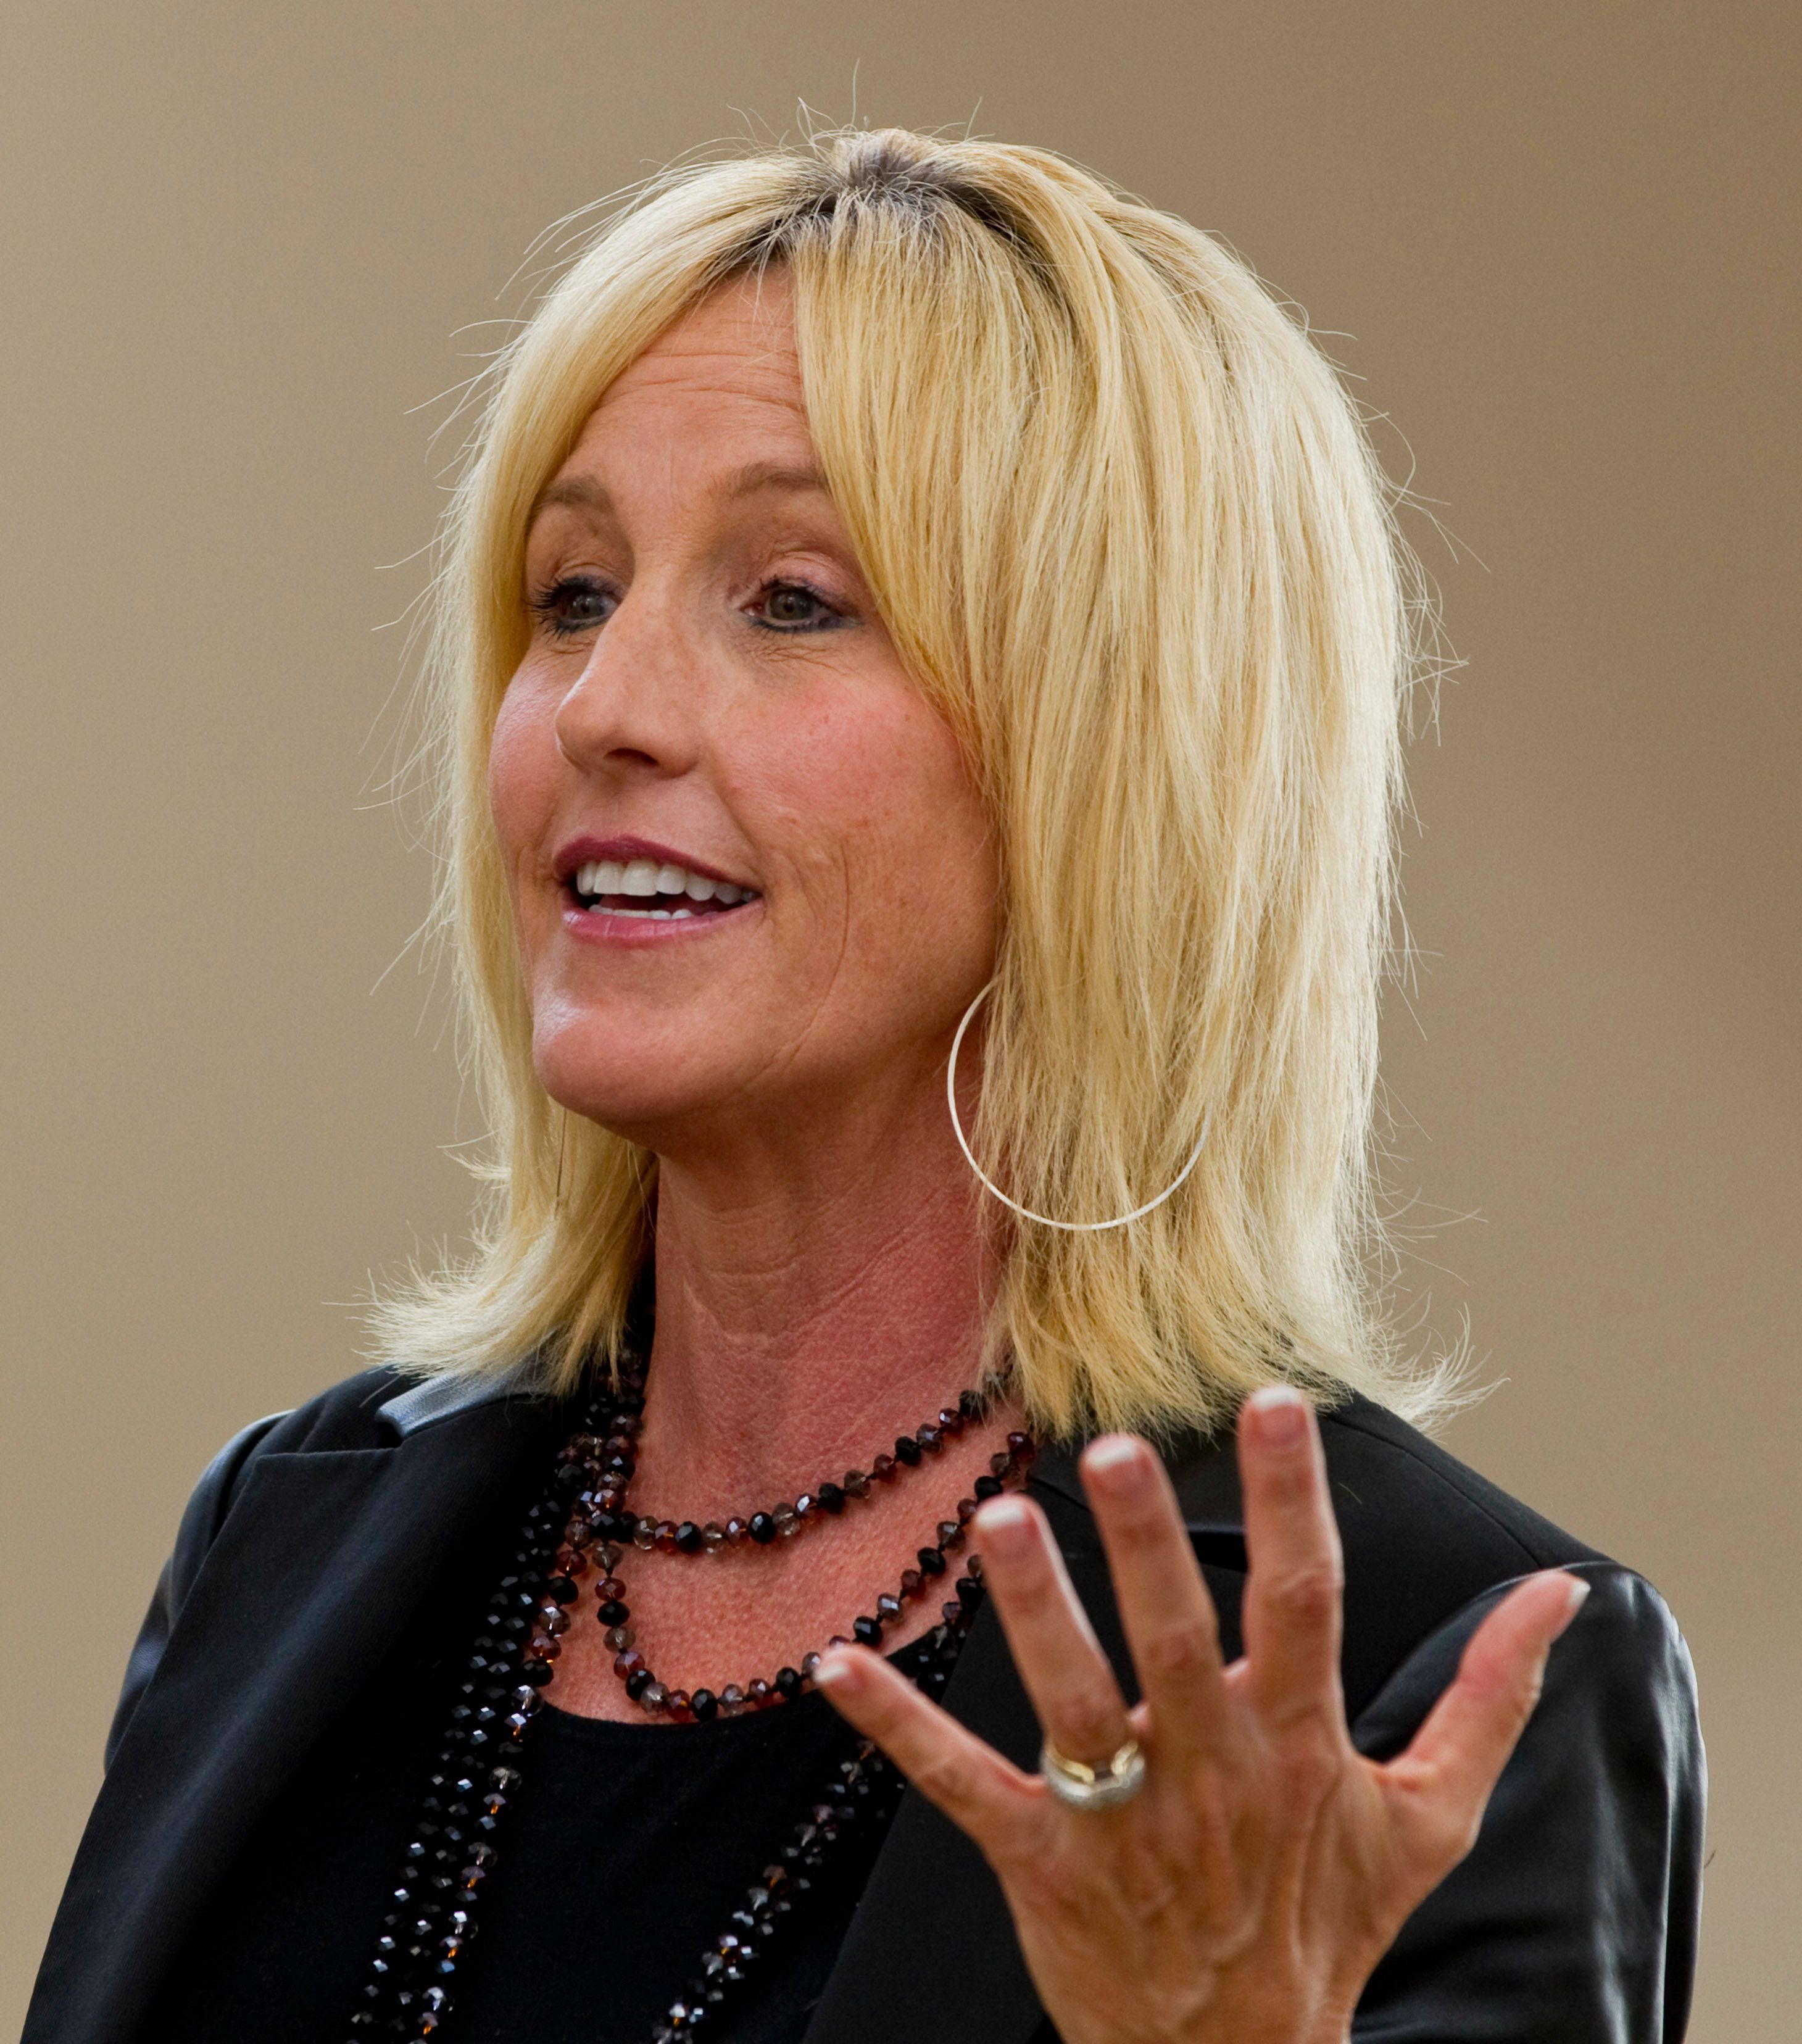 October 1, 2010 Erin Brockovich speaks to Oakville residents concerned about a gas power plant slated to be built beside residential neighbourhood. Brockovich was invited to Oakville by the Citizens for Clean Air Oakville. Toronto Star/Andrew Wallace (Photo by Andrew Francis Wallace/Toronto Star via Getty Images)